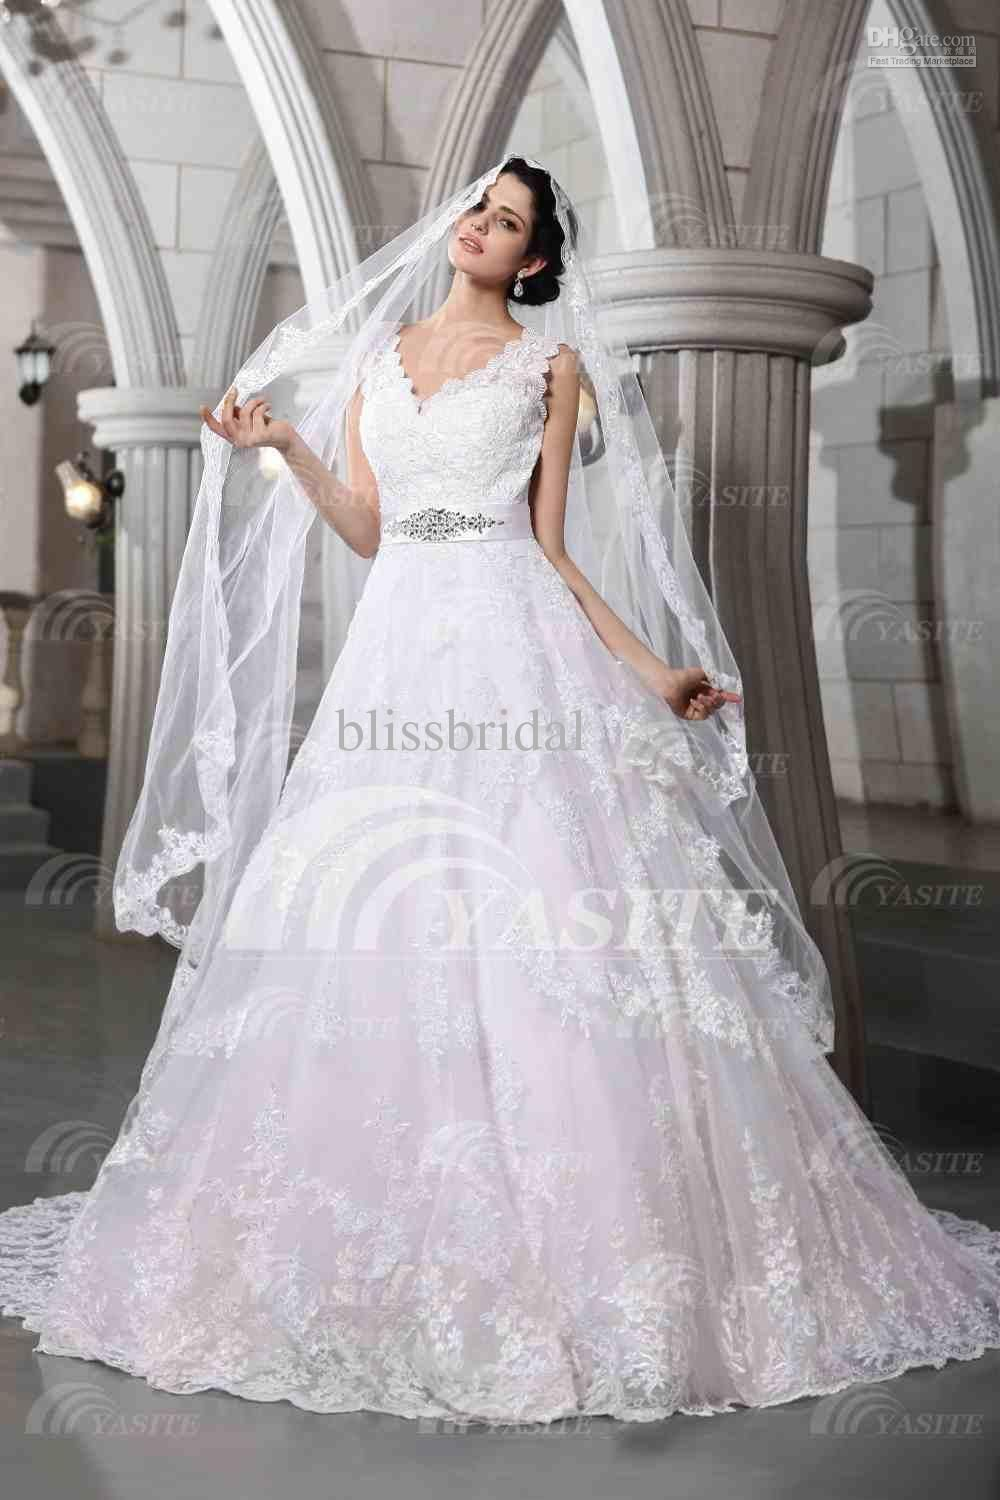 Luxurious v neck wedding dresses lace chapel train with a veil wholesale luxurious v neck wedding dresses lace chapel train with a veil brooch ball gown ombrellifo Choice Image